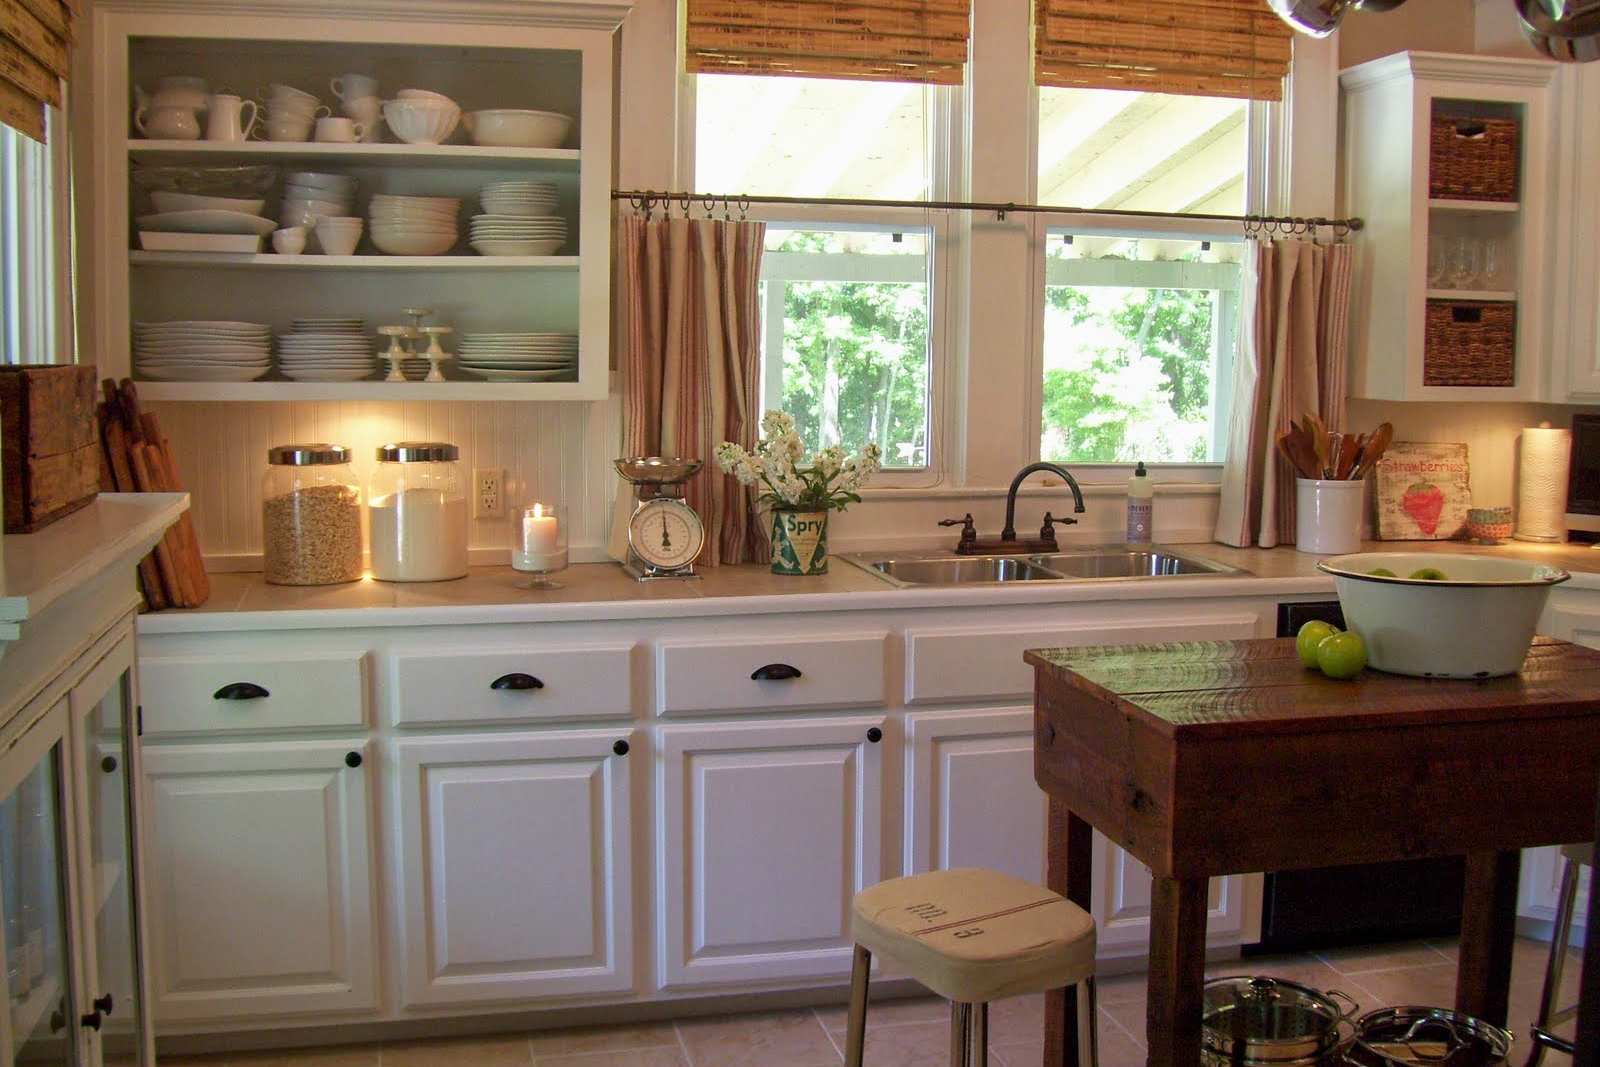 Kitchen Remodeling Ideas On A Budget Fair Remodeling A Kitchen  Do It Yourself Kitchen Remodel Decorating Inspiration